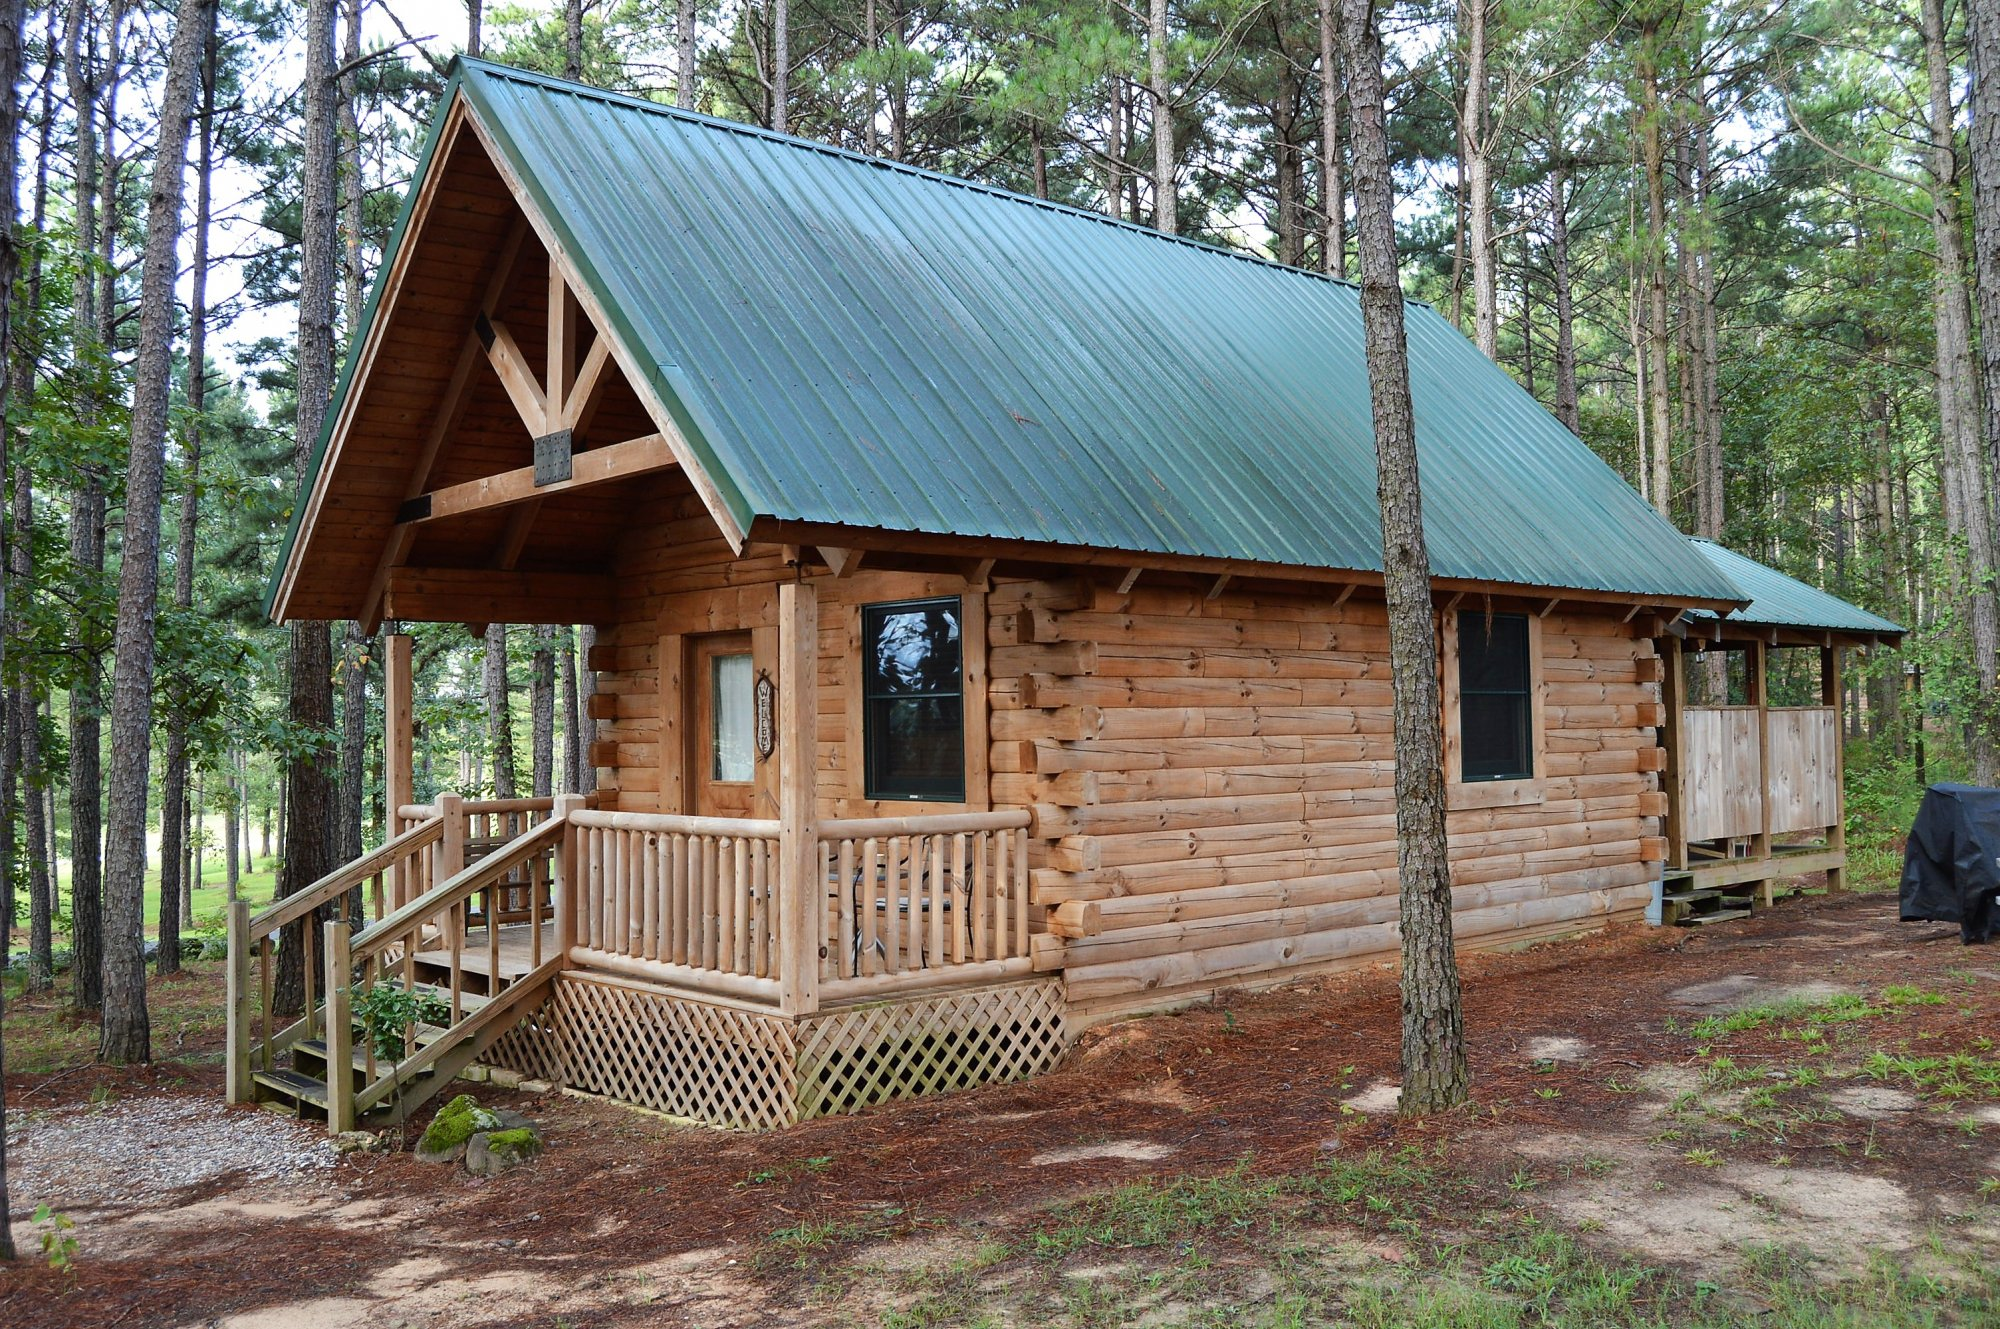 Country Charm Log Cabins Bismarck Arkansas Cabins